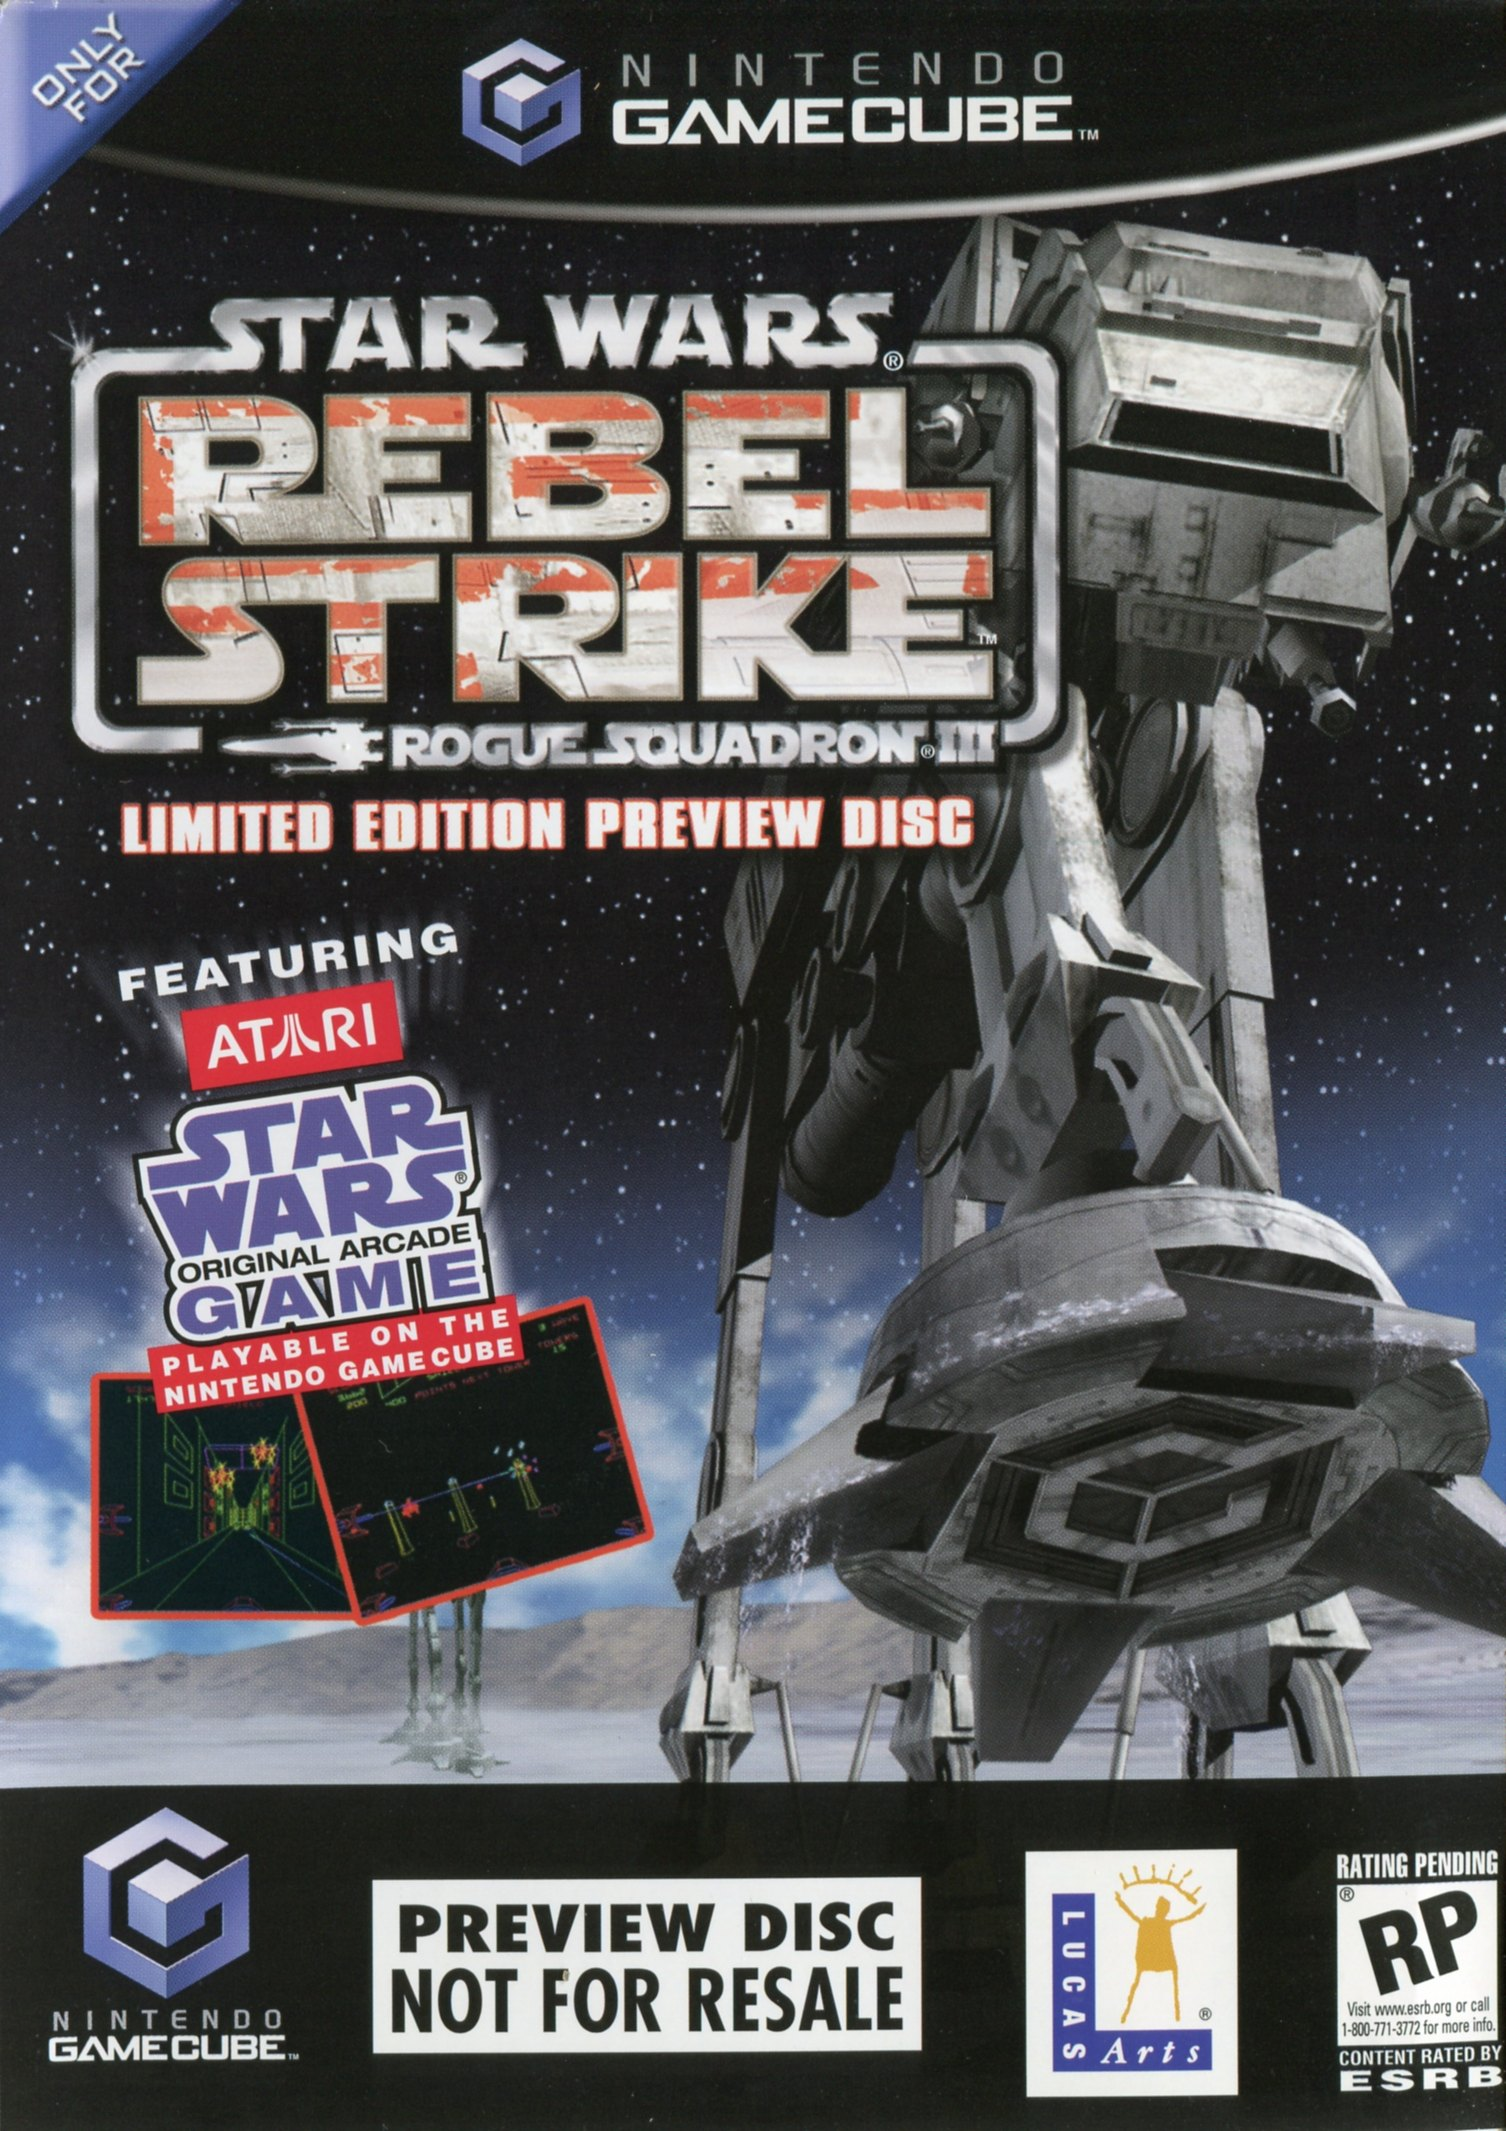 Star Wars Rogue Squadron III: Rebel Strike Preview Disc